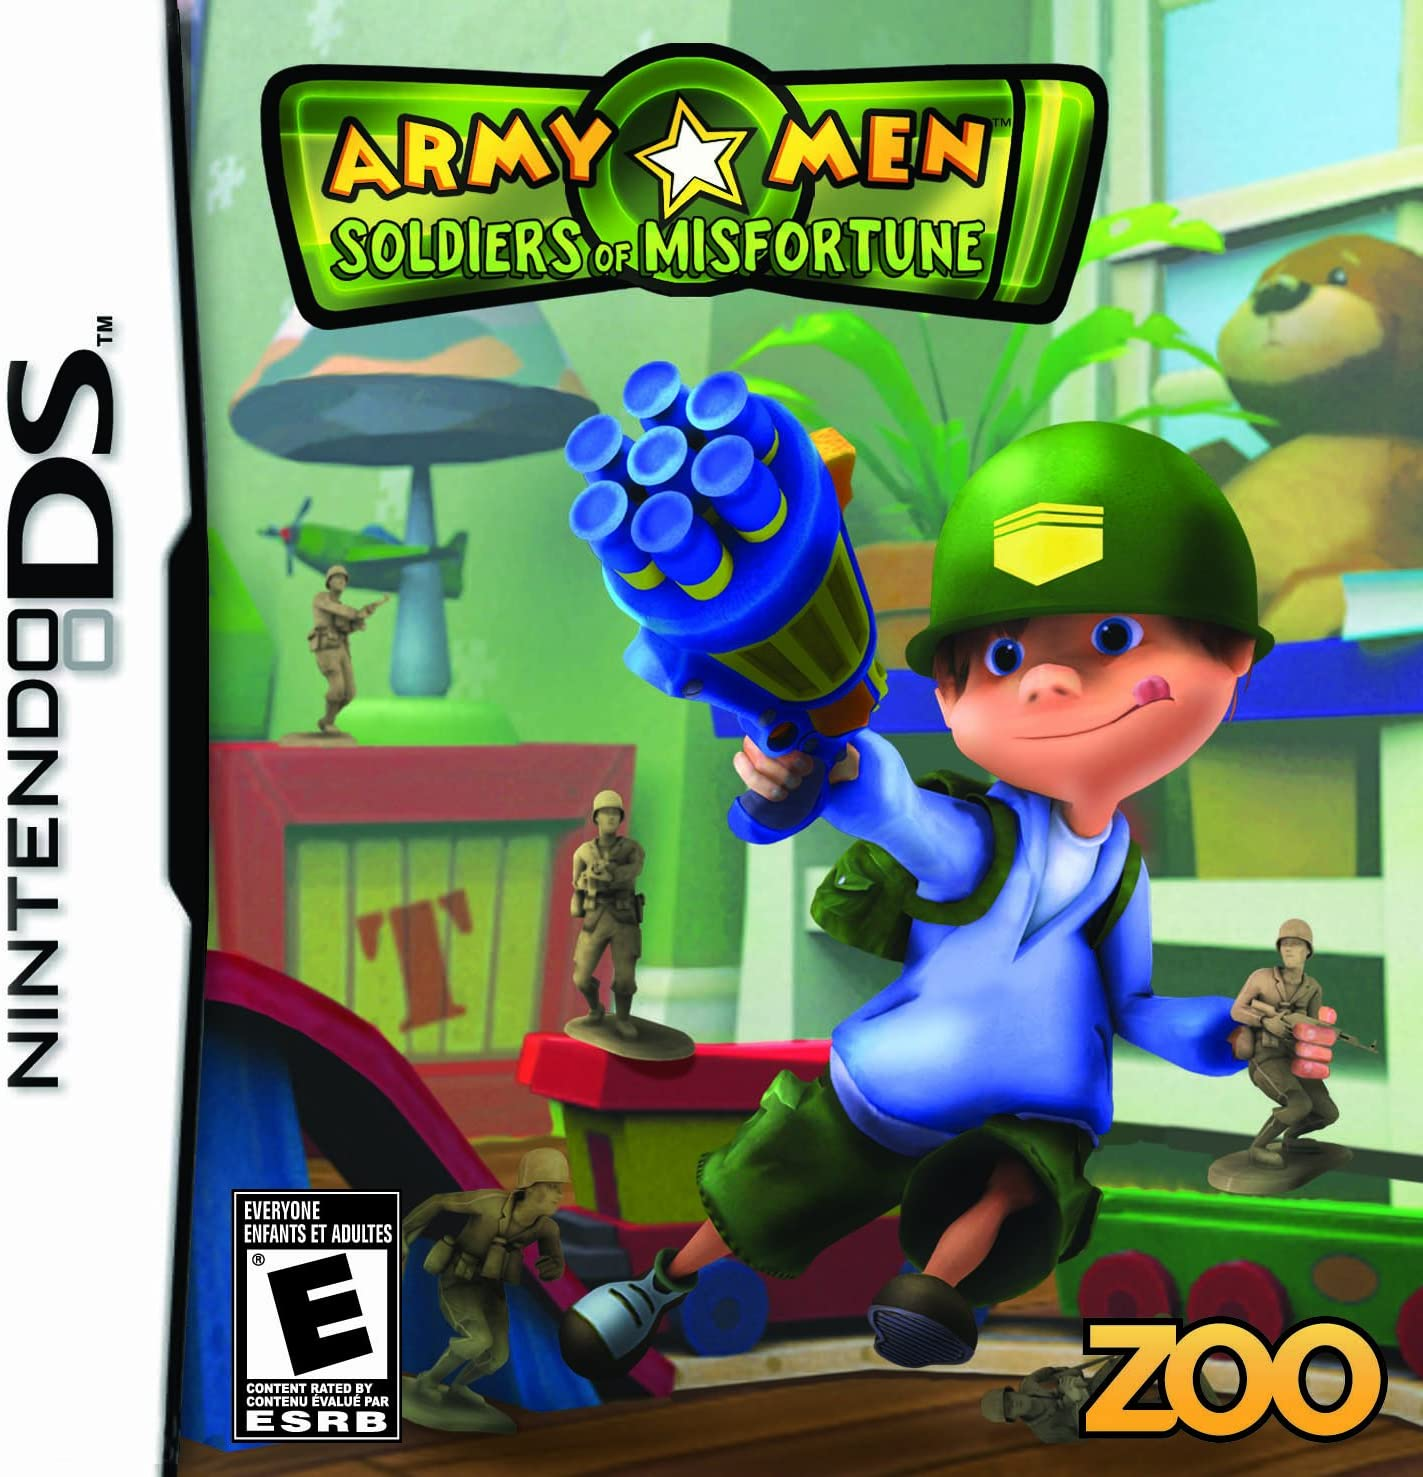 Ps4 Sonic Forces Day One Edition R1 Eng Army Men Soldiers Of Misfortune Playstation 2 Artist Not Provided Video Games